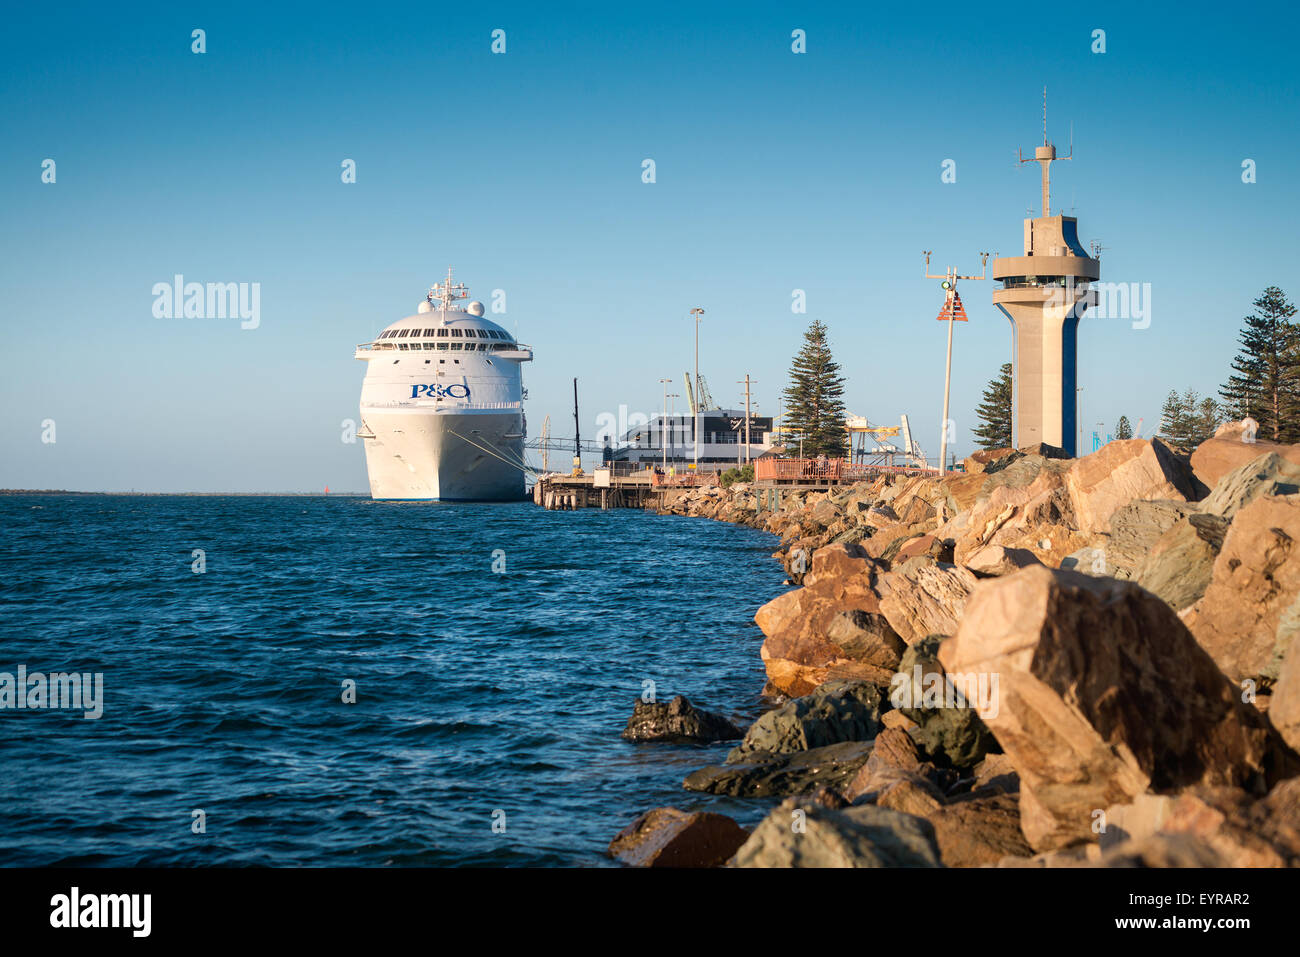 Adelaide, Australia - March 5, 2015: P&O Pacific Jewel cruise ship is docked at Port Adelaide to pick up passengers - Stock Image